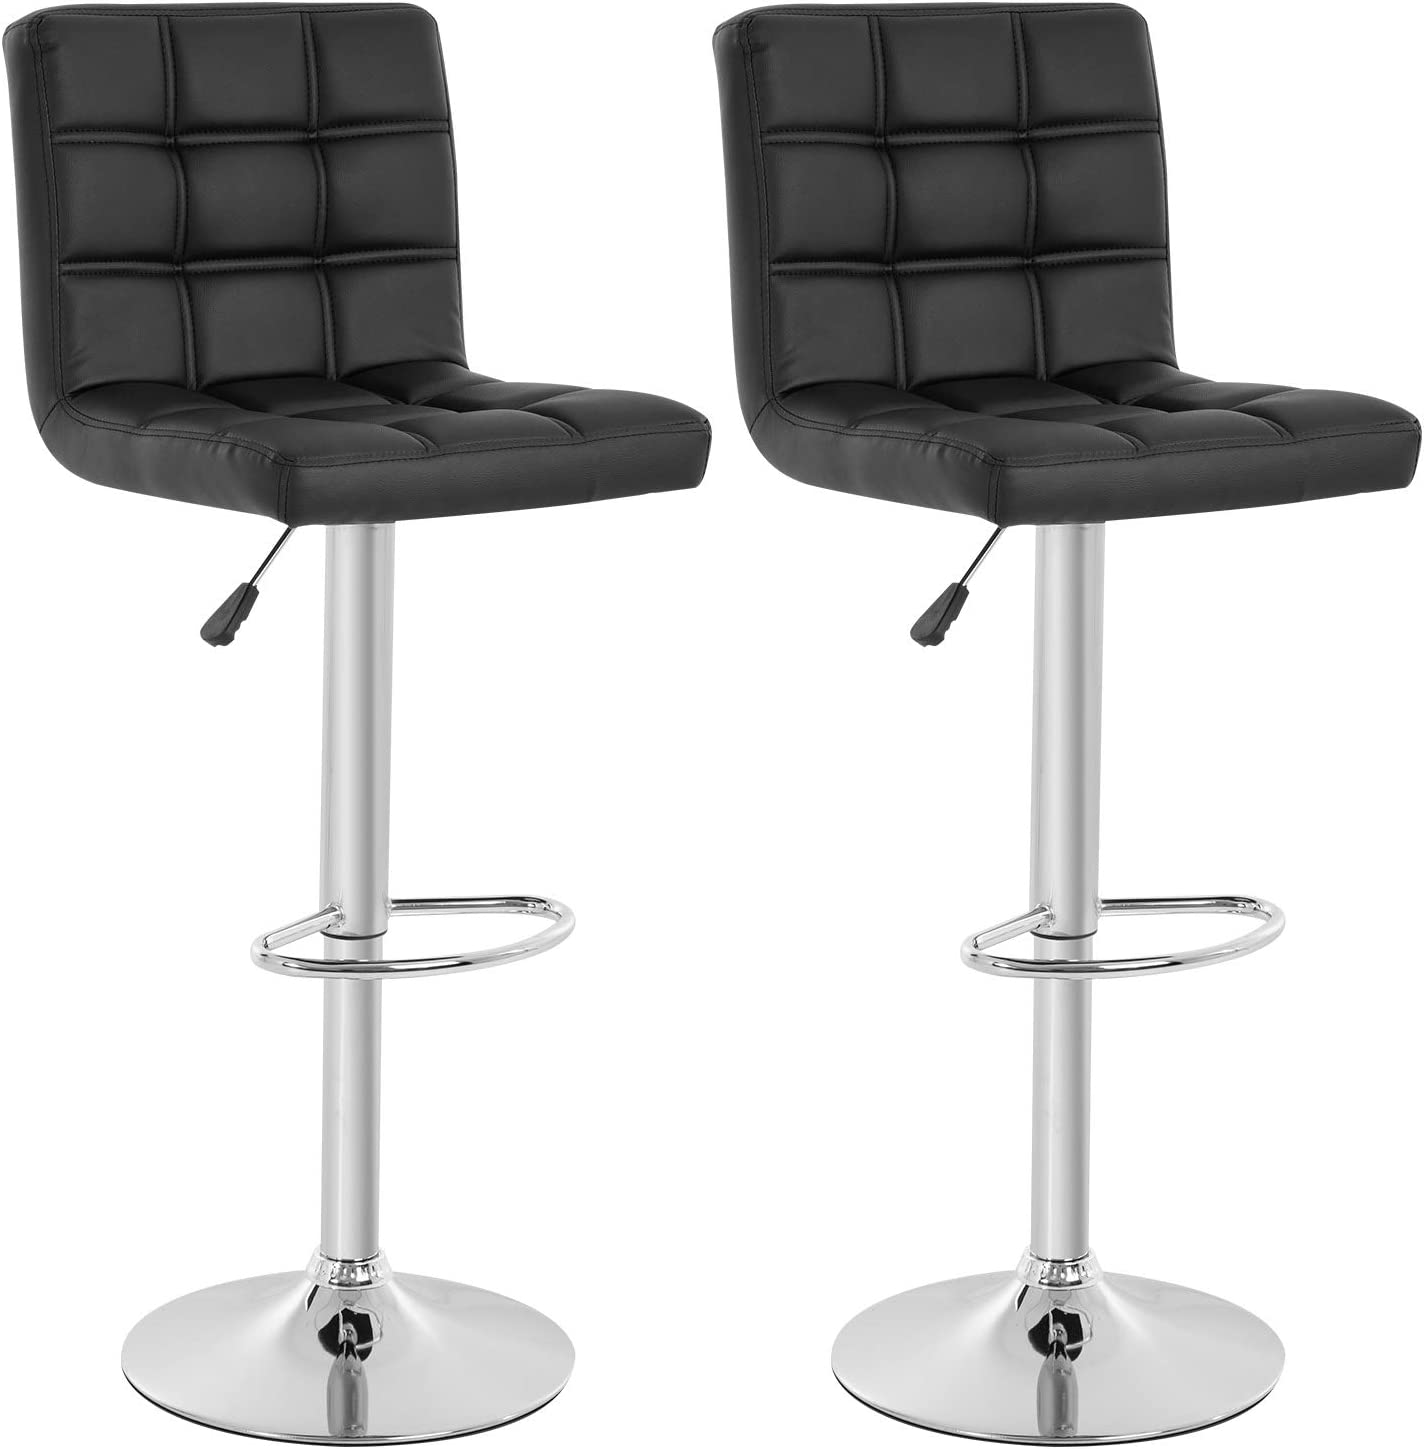 Modern Bar Stool Set of 2 Barstools Height Adjustable Counter Height Swivel Bar Stool PU Leather Bar Chairs Hydraulic Dining Room Chairs Home Kitchen Stools